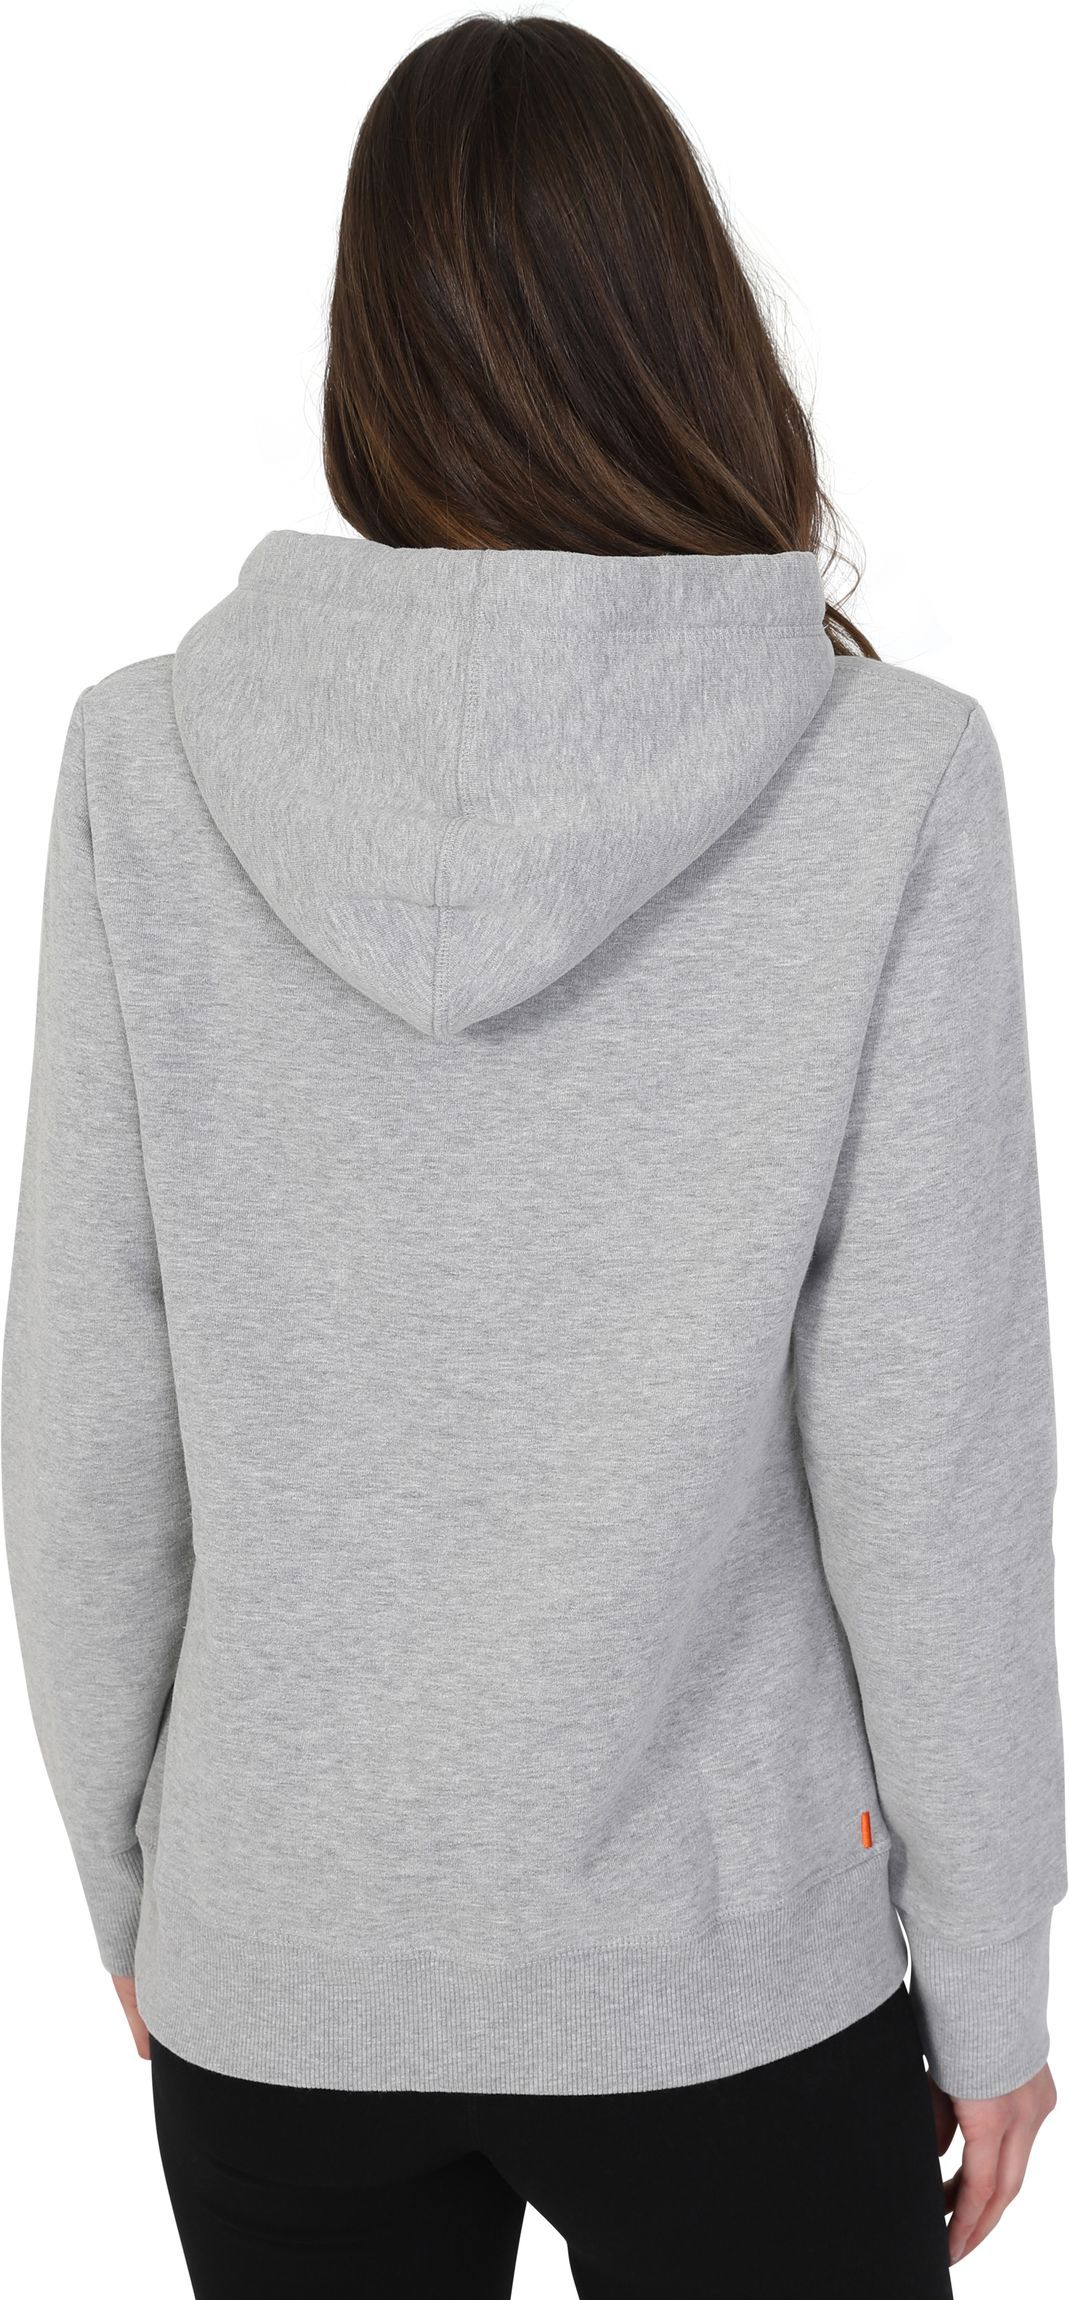 Superdry-Hoodie-Women-039-s-Tops-Assorted-Styles thumbnail 76